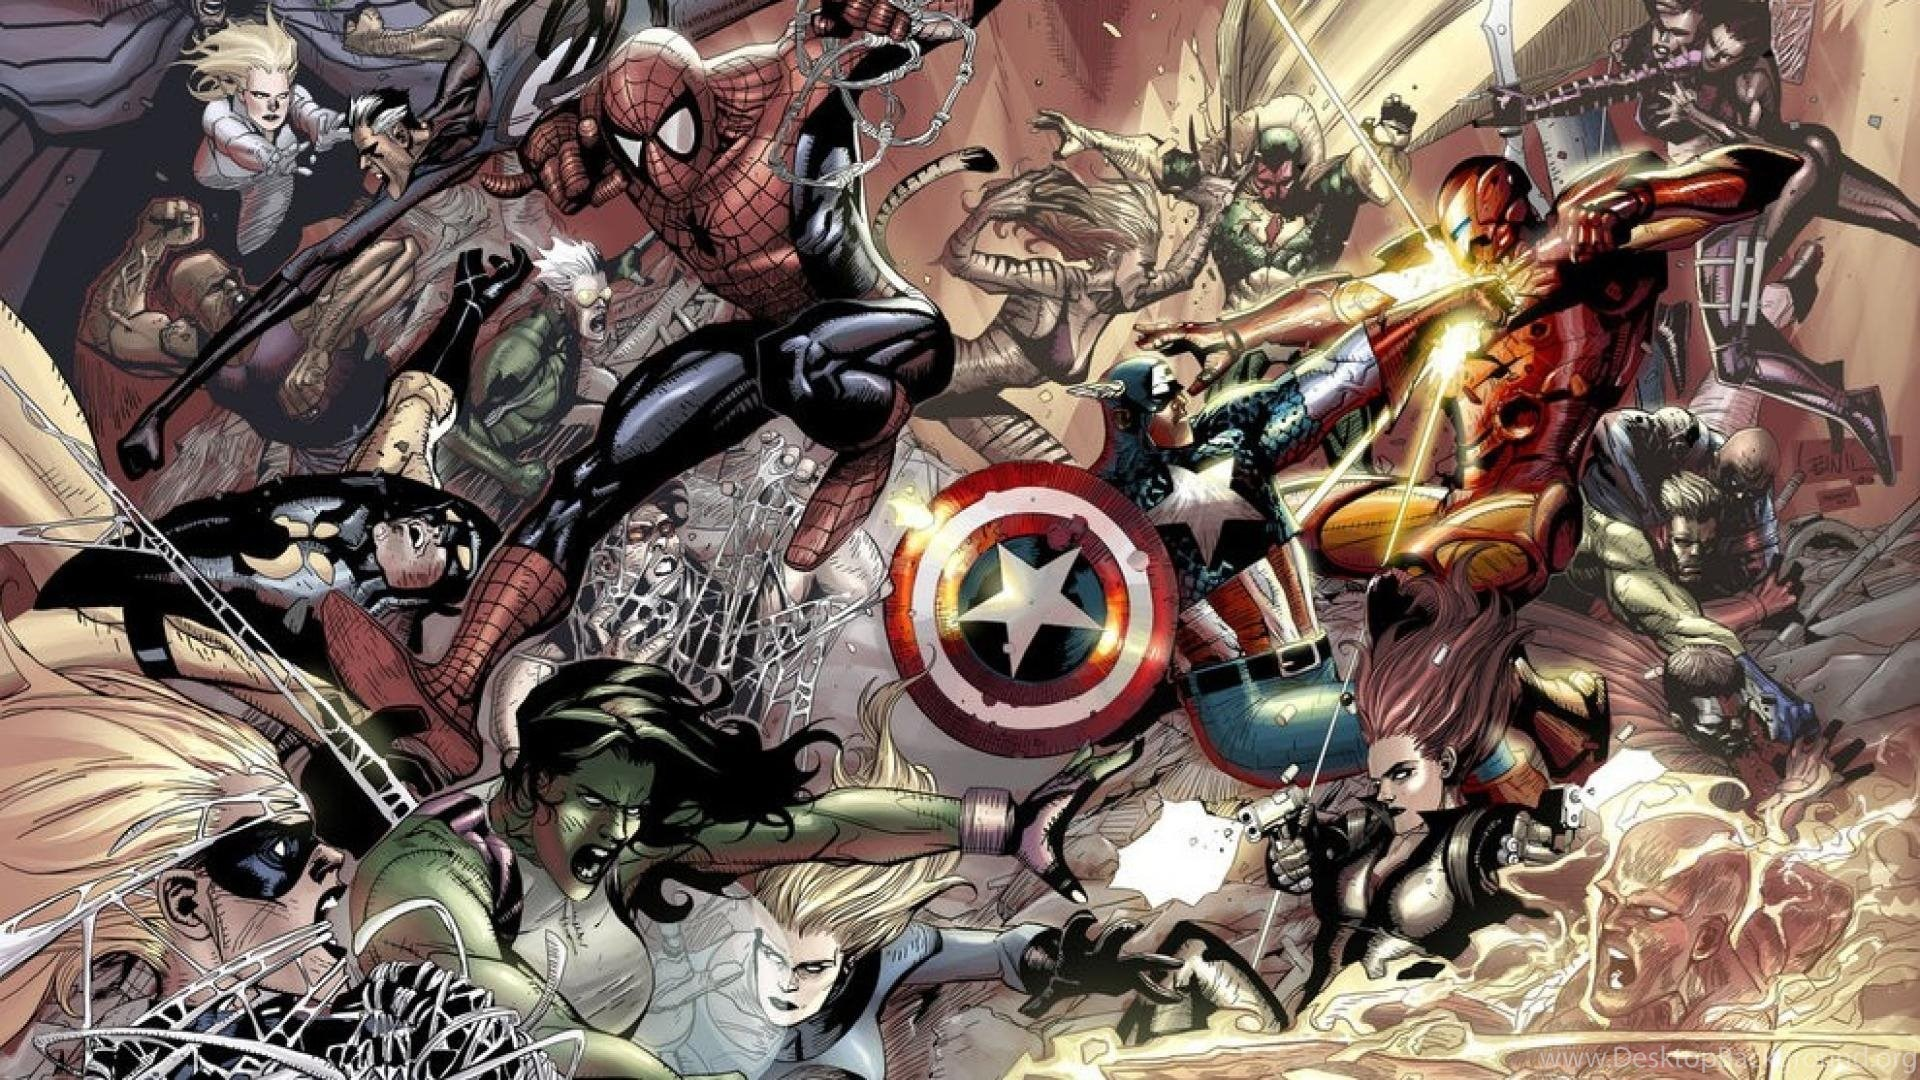 Beautiful Wallpaper Marvel Ipad Mini - 926426_iron-man-spider-man-captain-america-marvel-comics-wallpapers_1920x1080_h  2018_362613.jpg